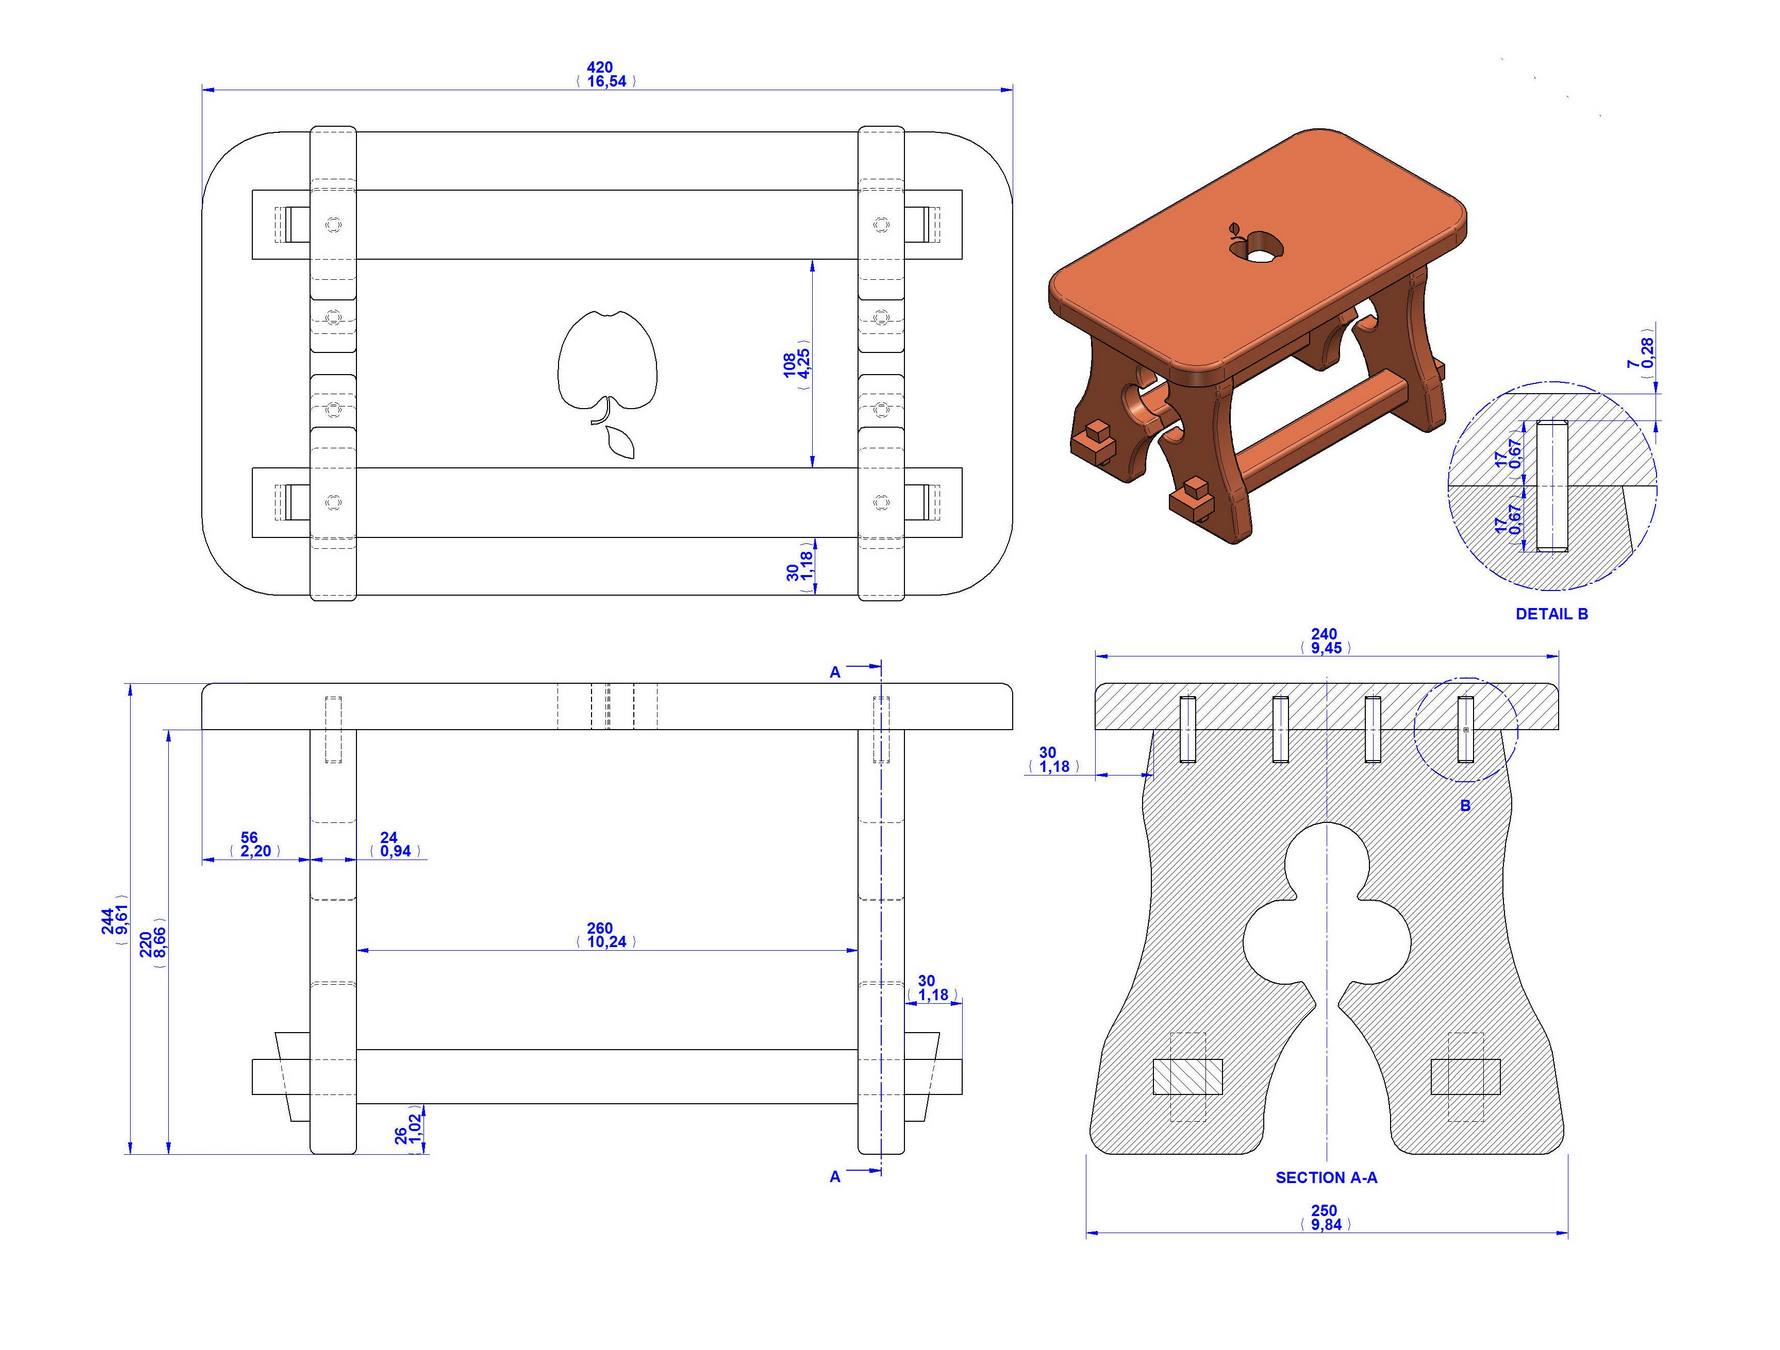 Rustic stool plan - Assembly drawing